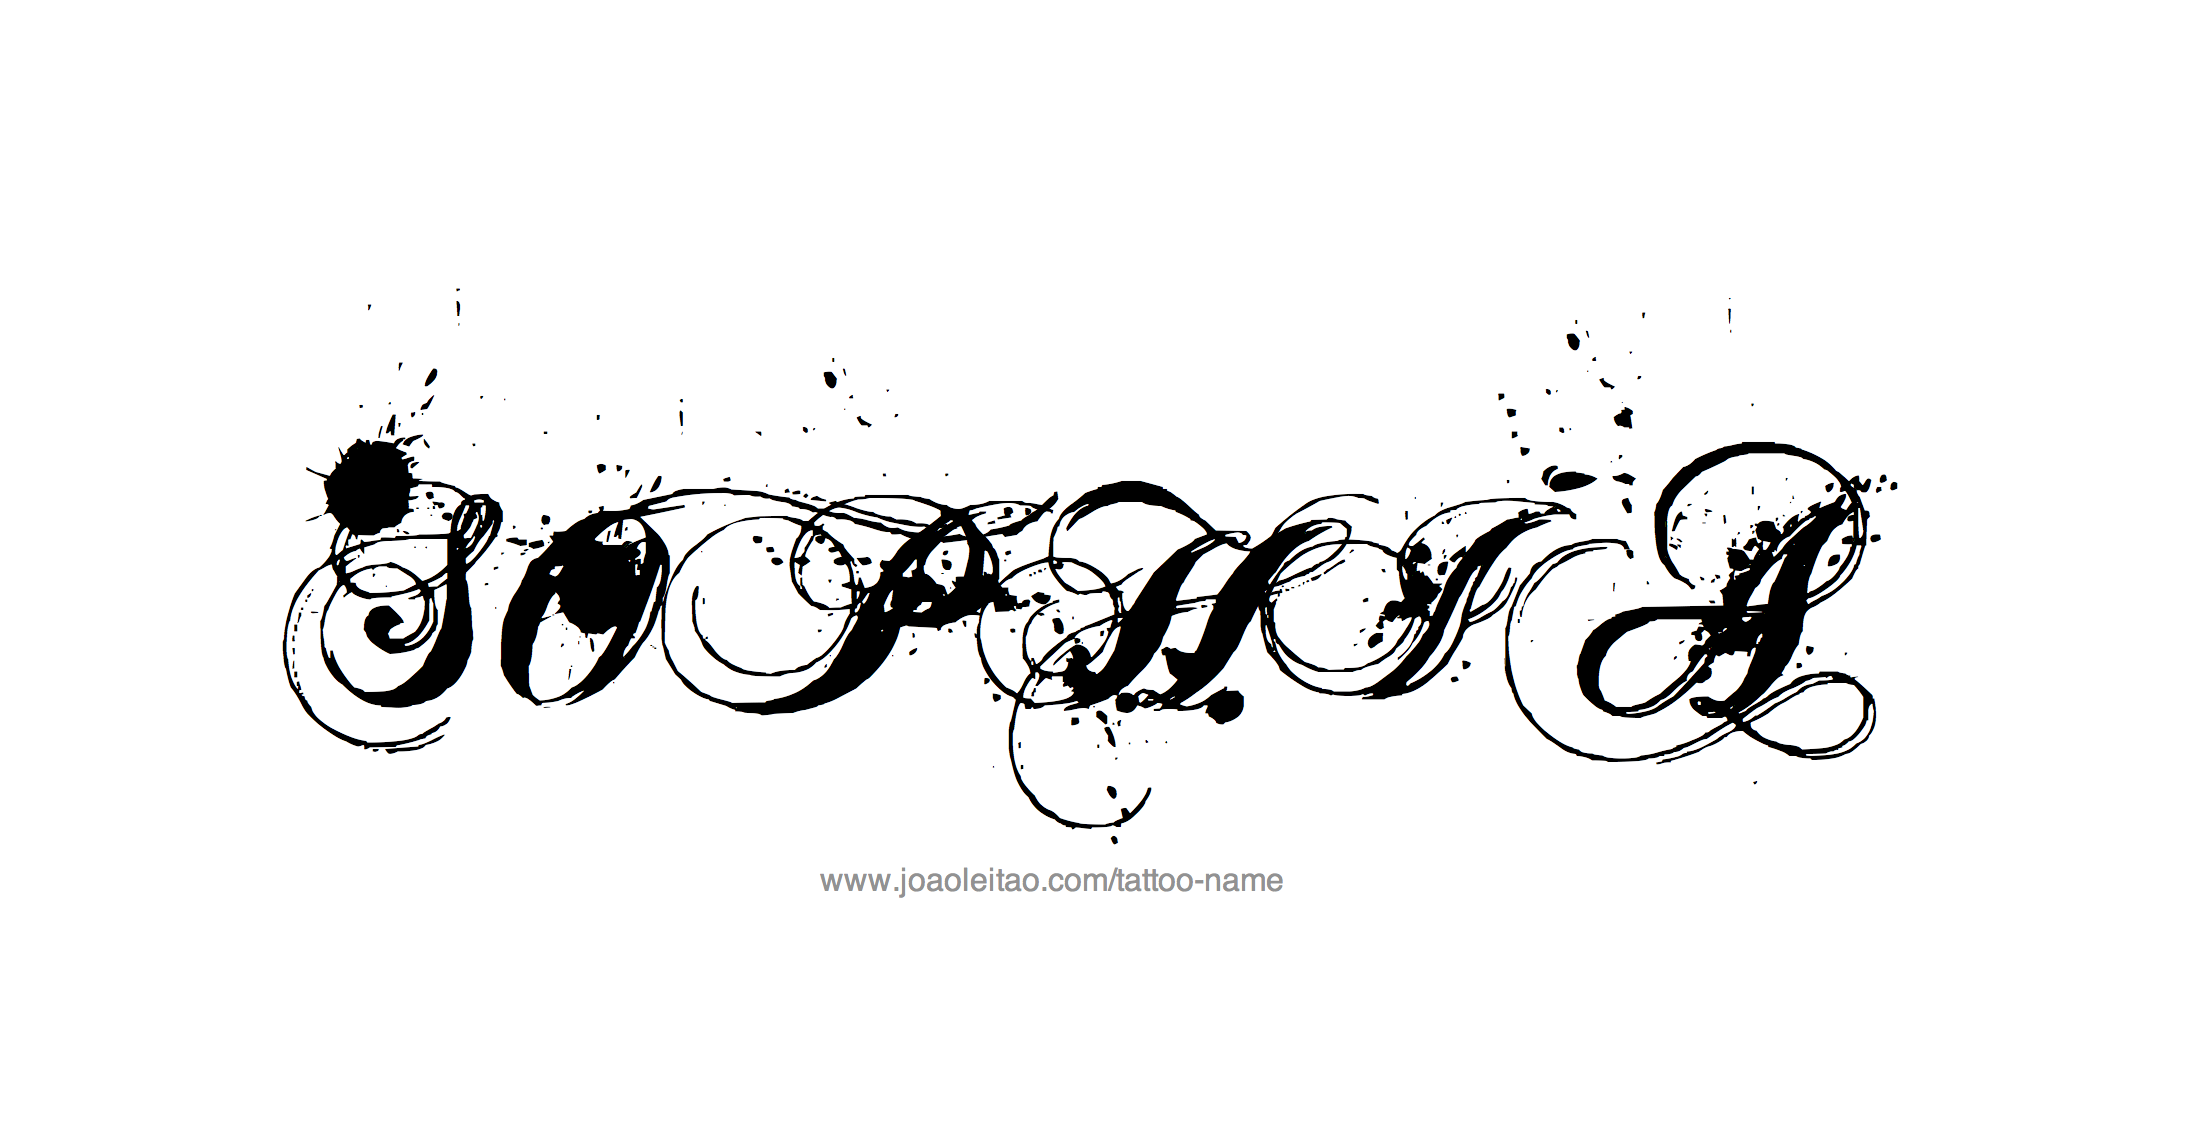 Sophia Name Tattoo Designs Projects To Try Name Tattoos Name